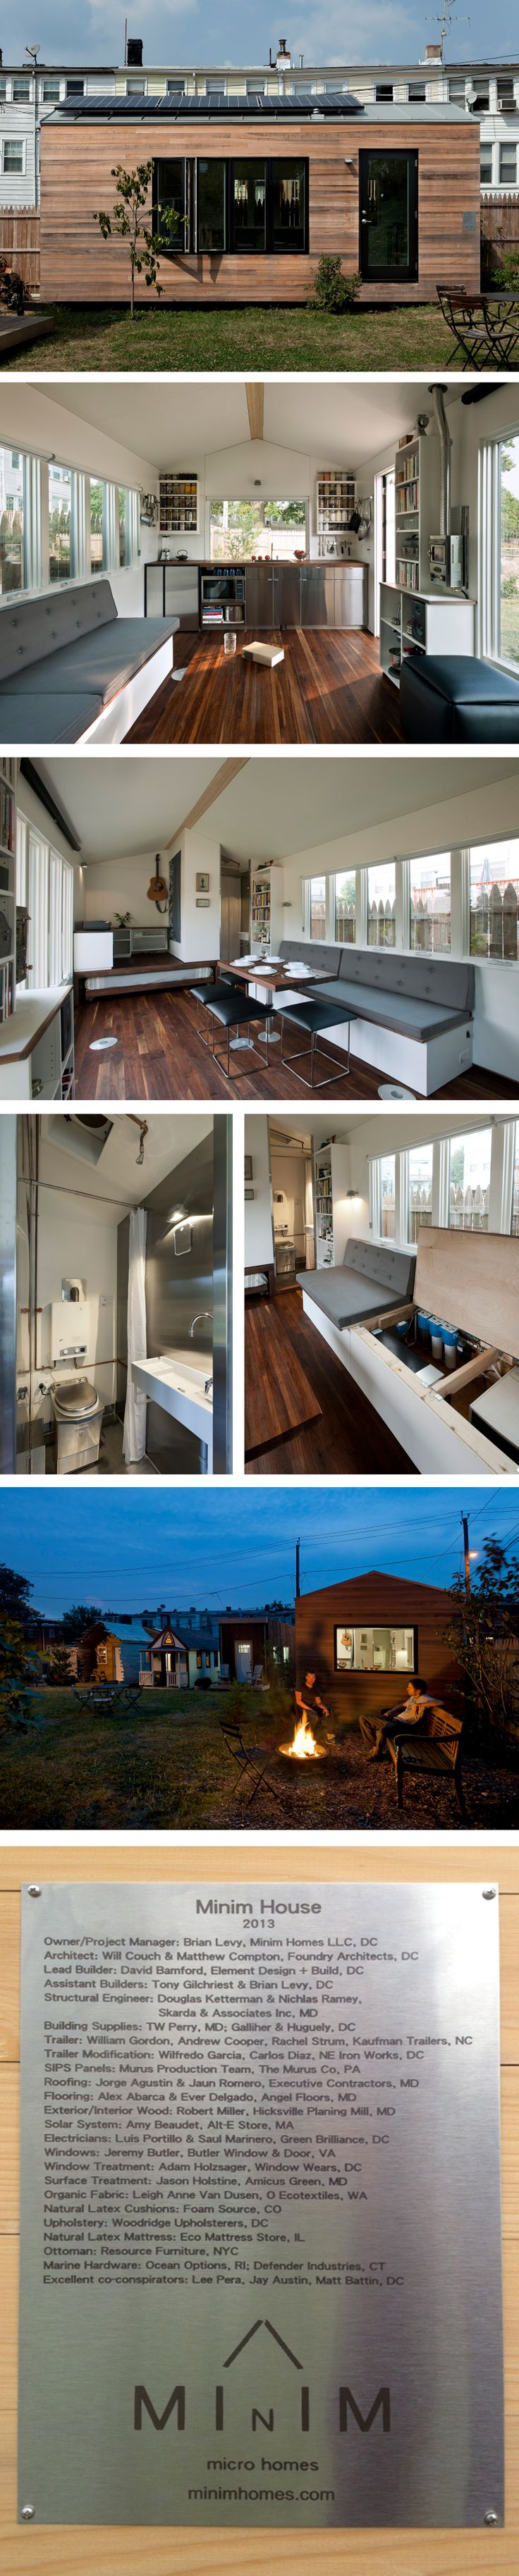 Tiny# House - Minim House. Like the pullout bed area-but not bathroom if shower over toilet...